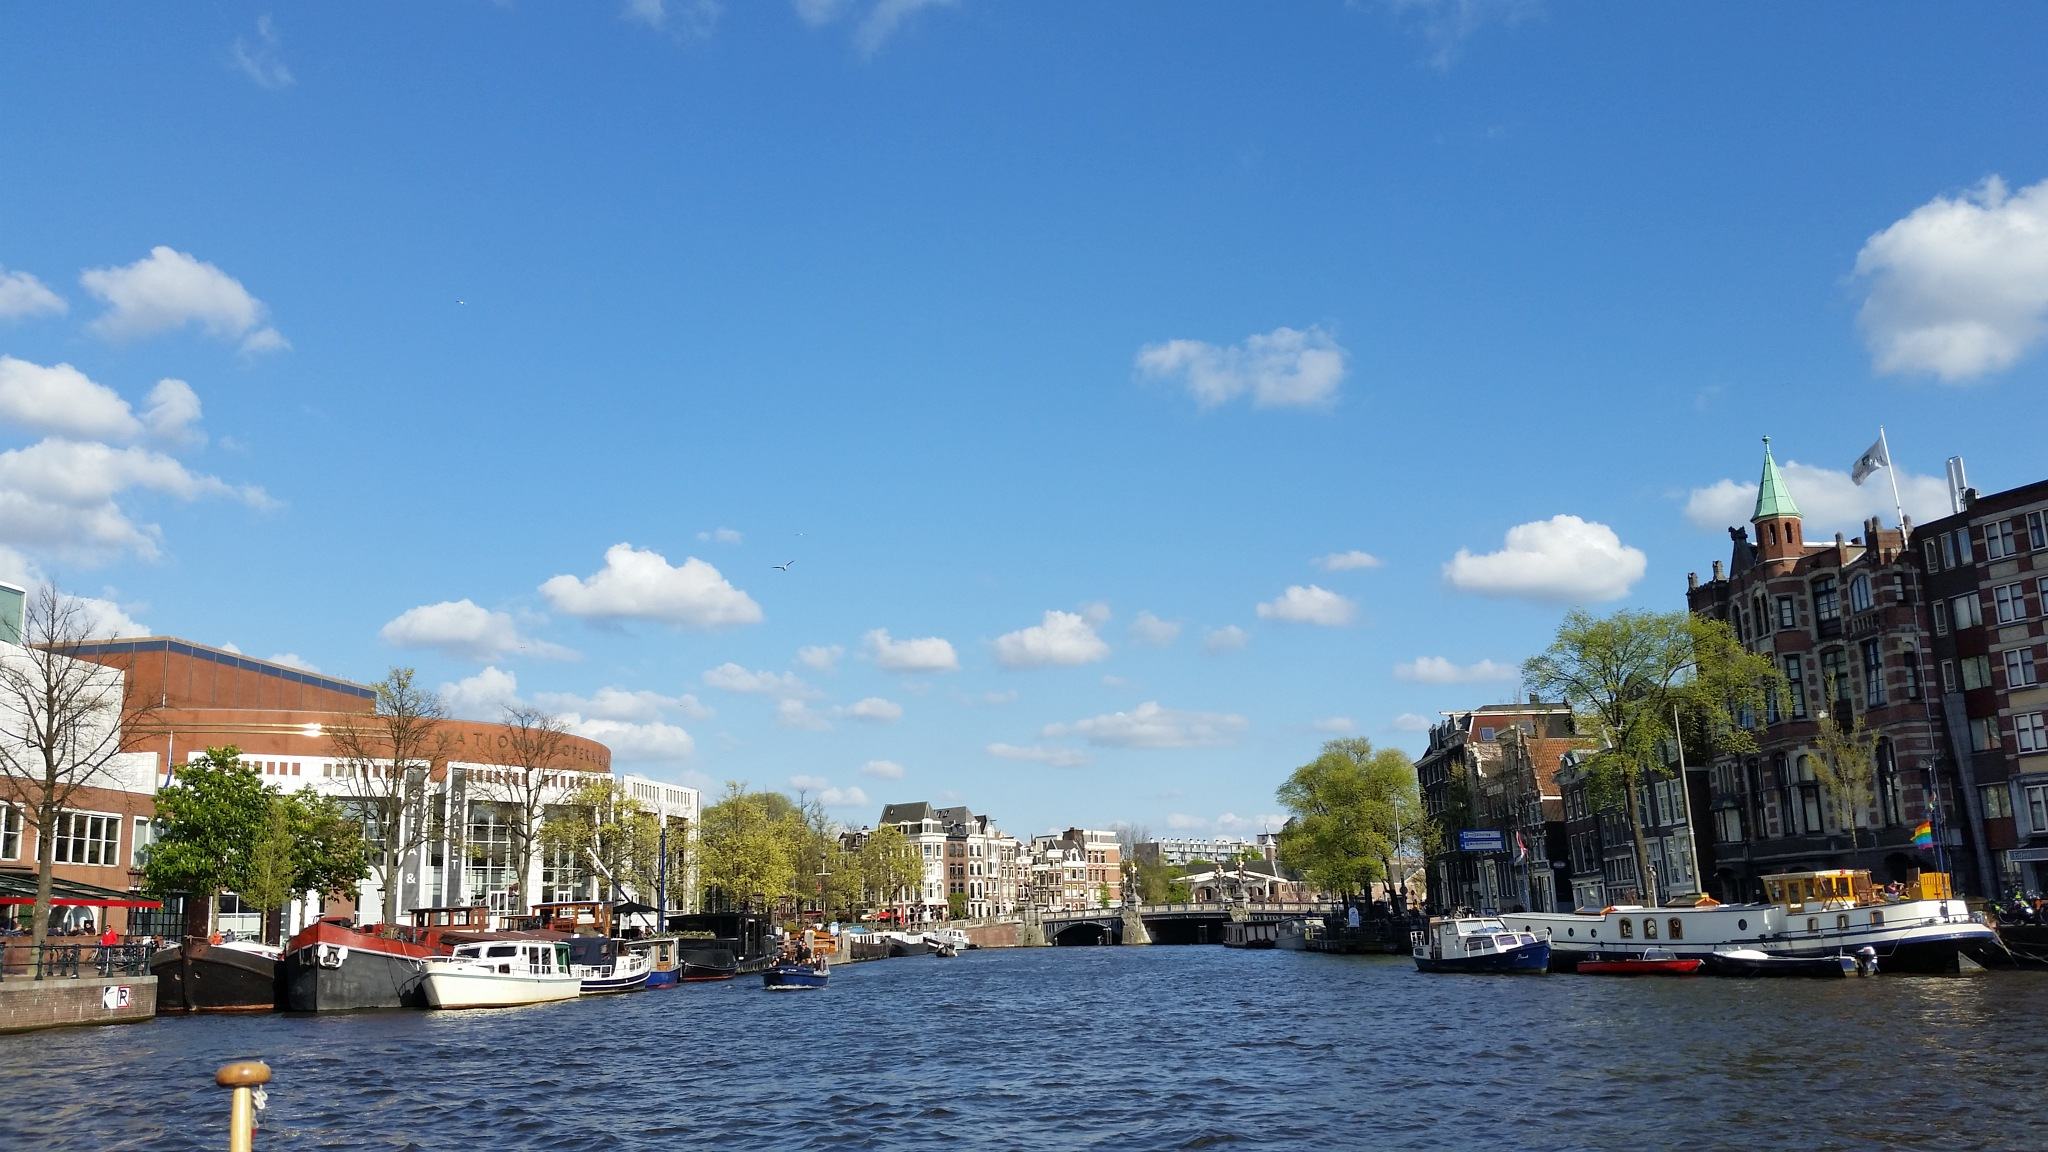 Channeling through Amsterdam by Alan G. Renner